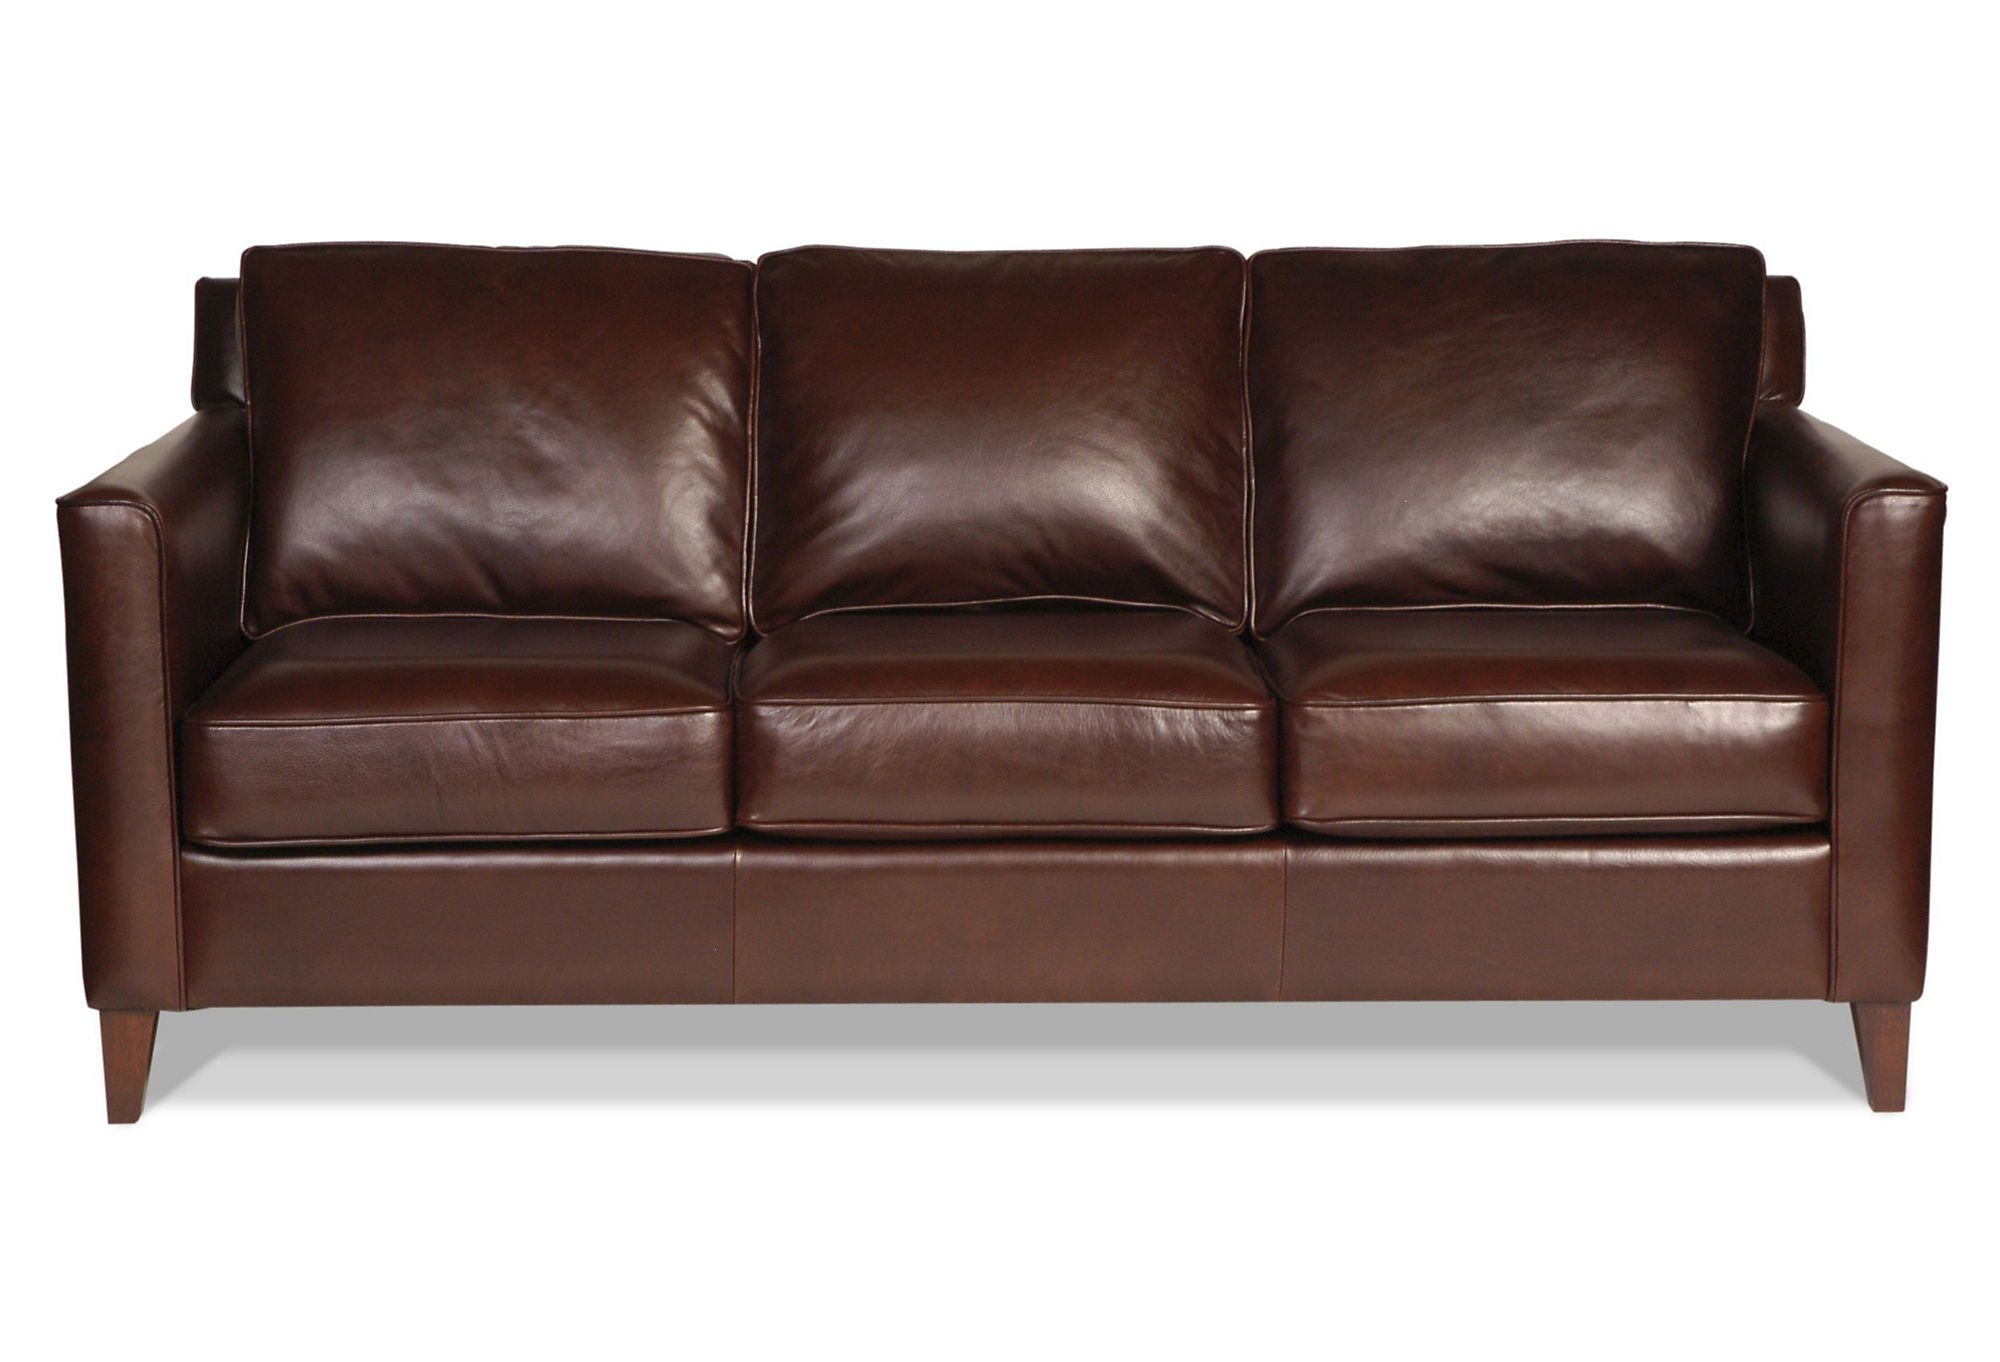 Square Arm Bonded Leather Sofa Threshold™ Chocolate by